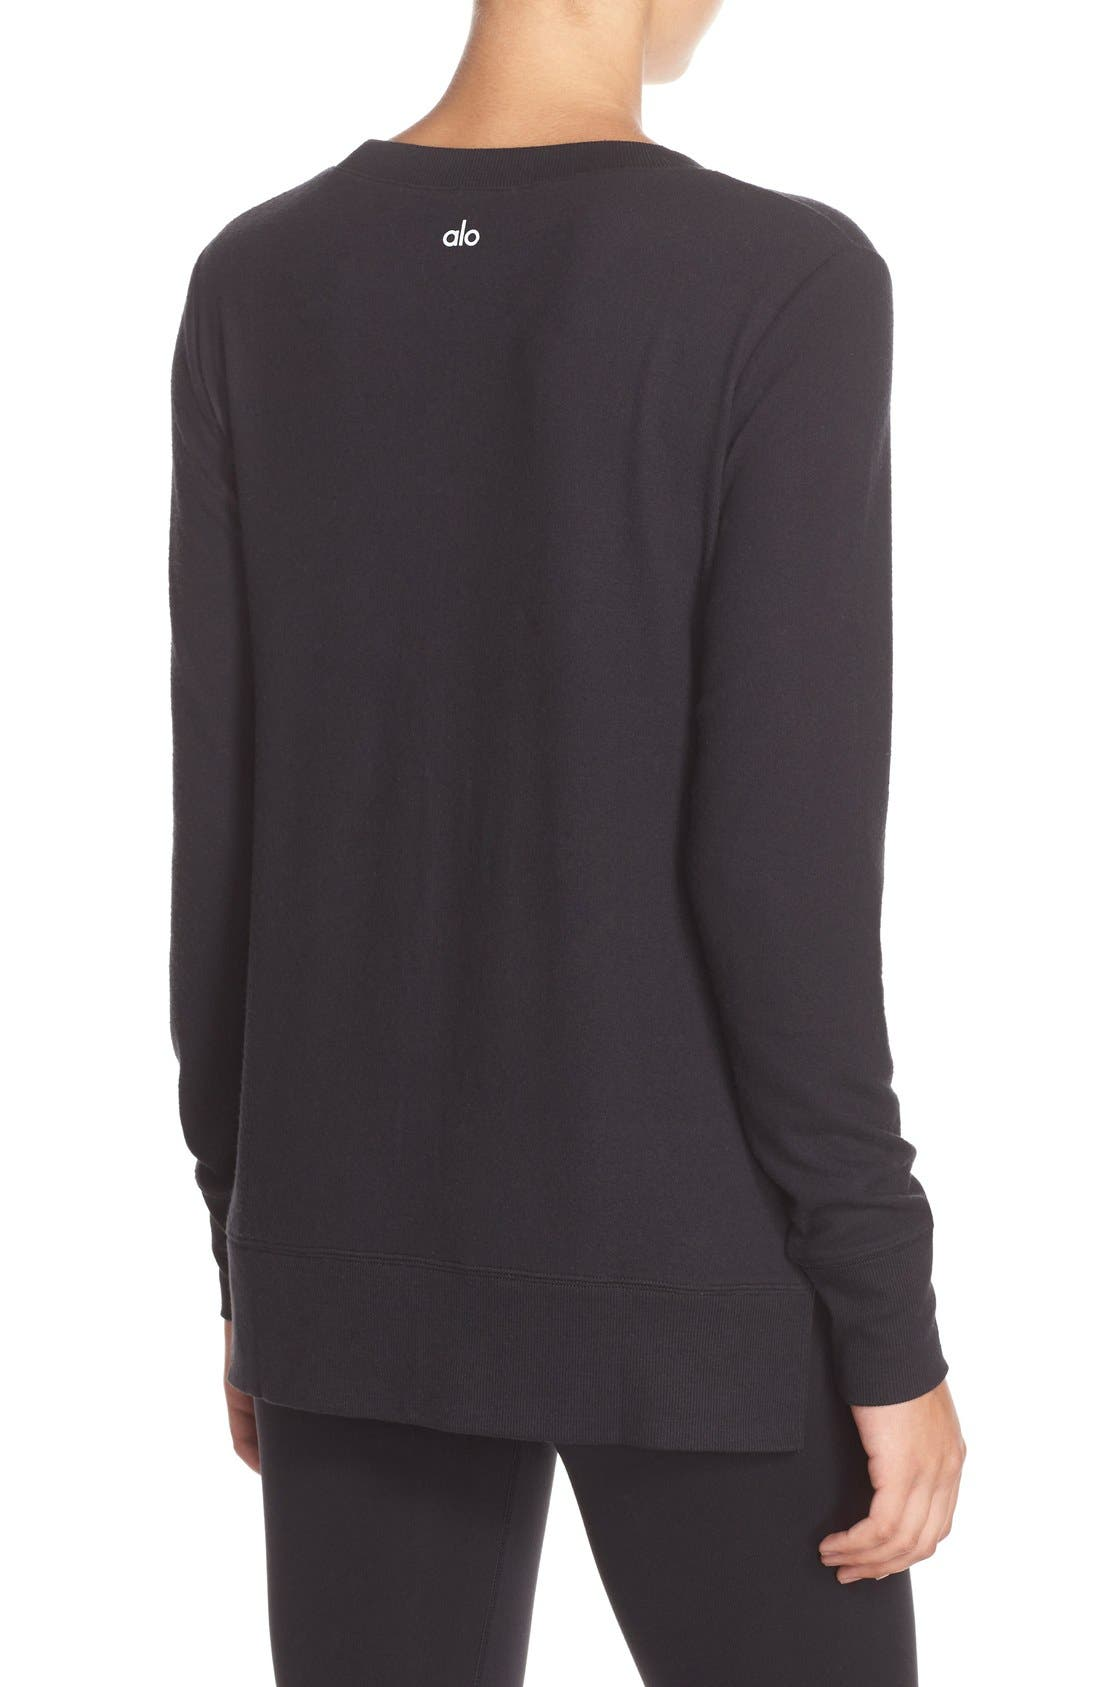 ALO, 'Glimpse' Long Sleeve Top, Alternate thumbnail 4, color, BLACK